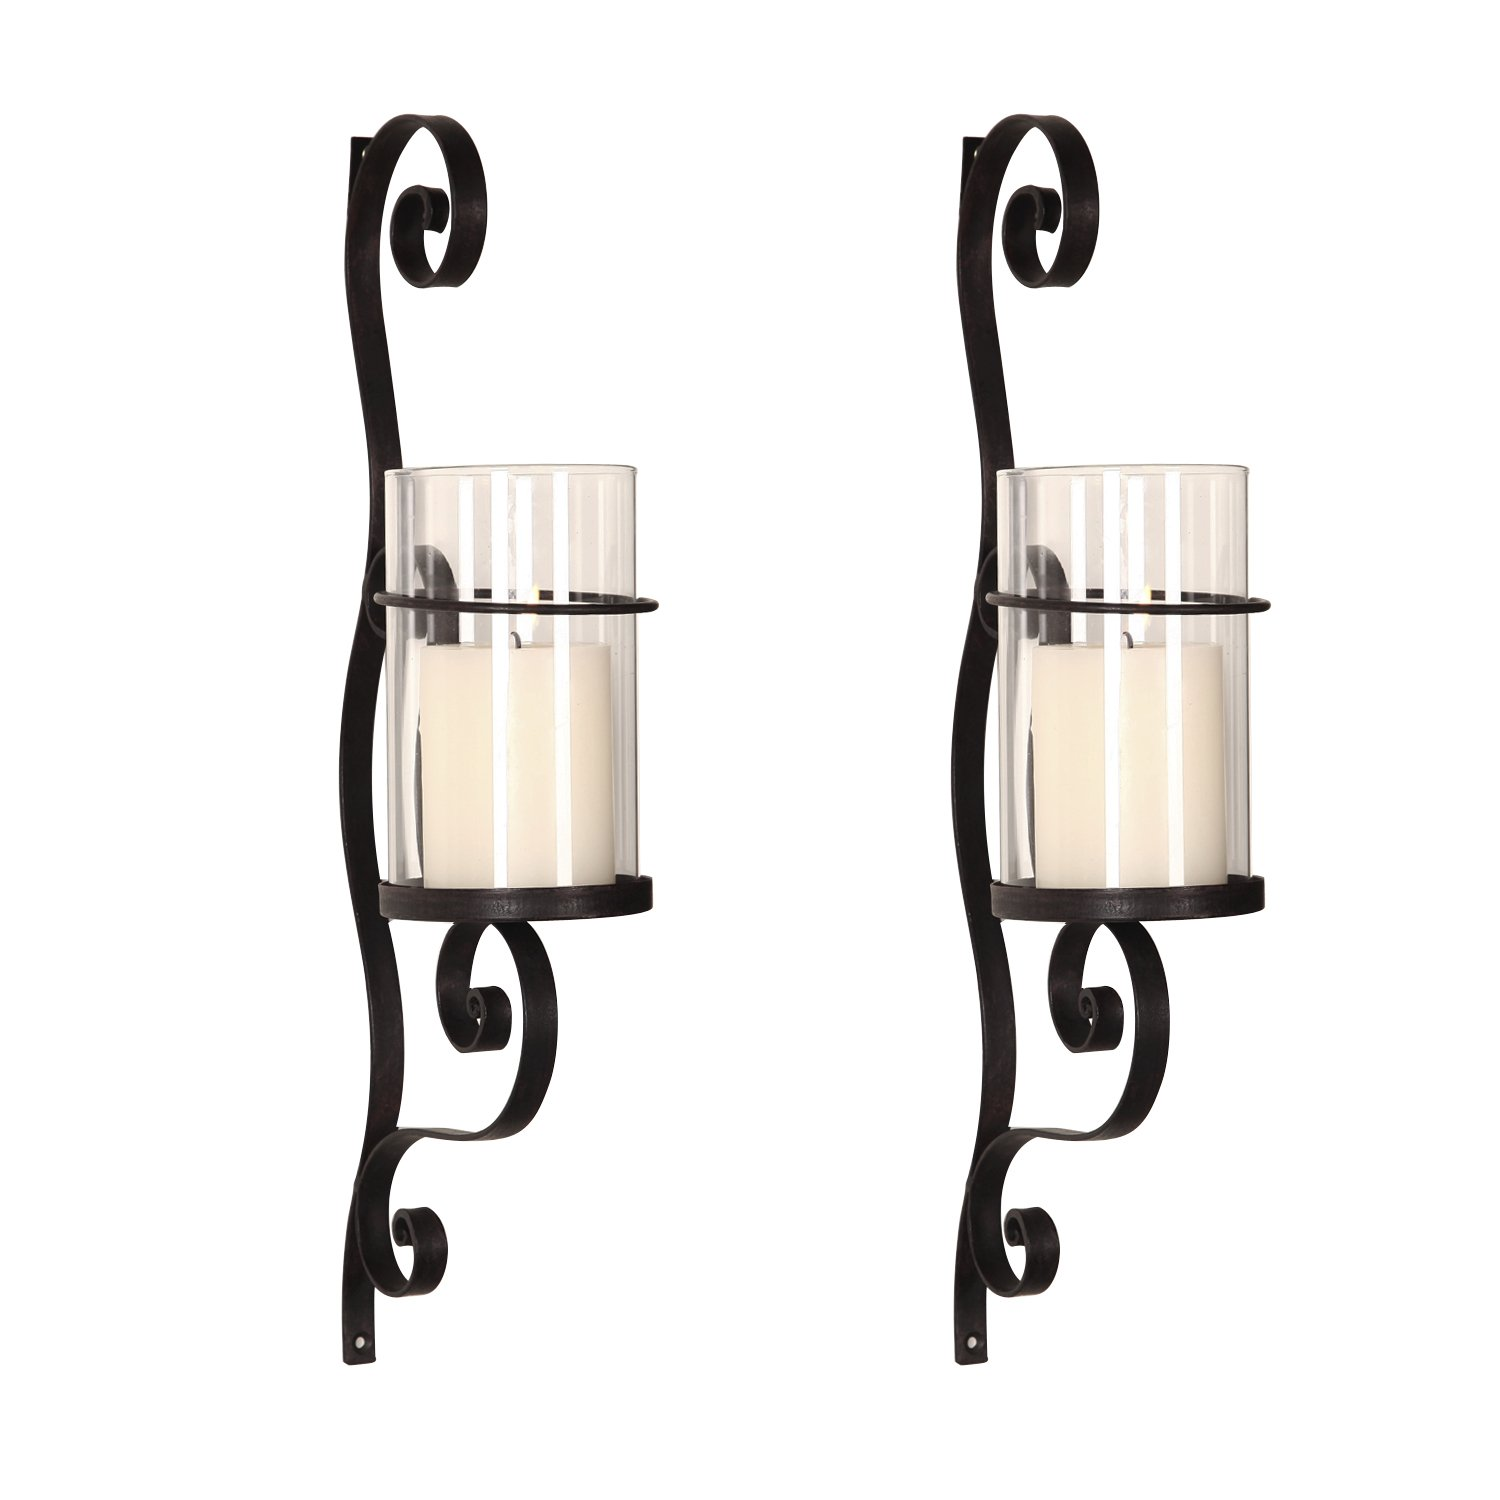 Adeco Iron and Glass Vertical Wall Hanging Candle Holder Sconce Holds One Pillar Candle 3-Dimensional Scroll Design